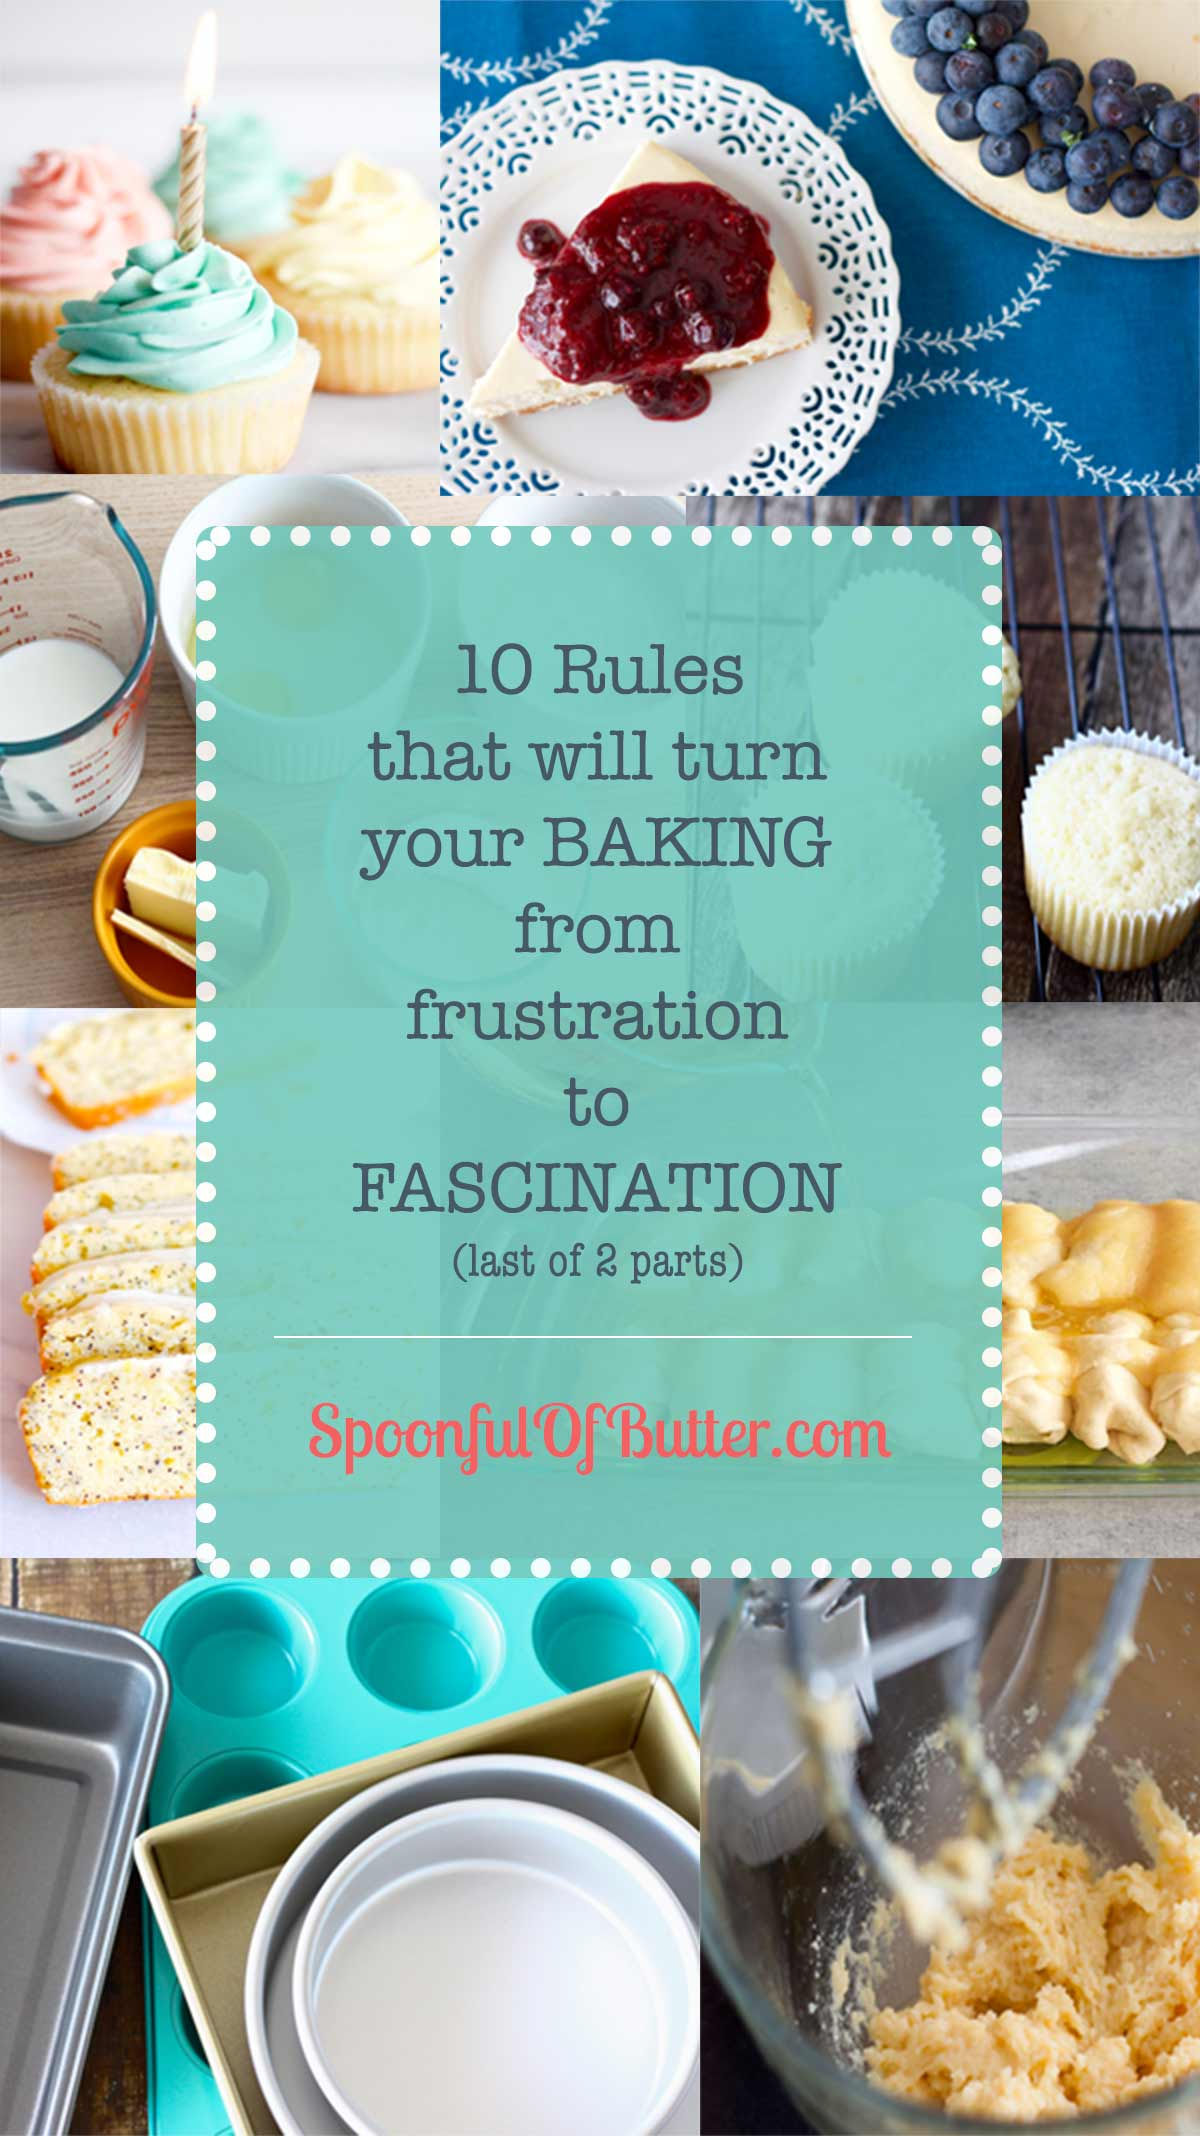 10 Rules that will turn your baking from frustration to fascination (1st of 2 parts). If you learn and follow these important baking rules, you are well on your way to more successes in the kitchen. ?